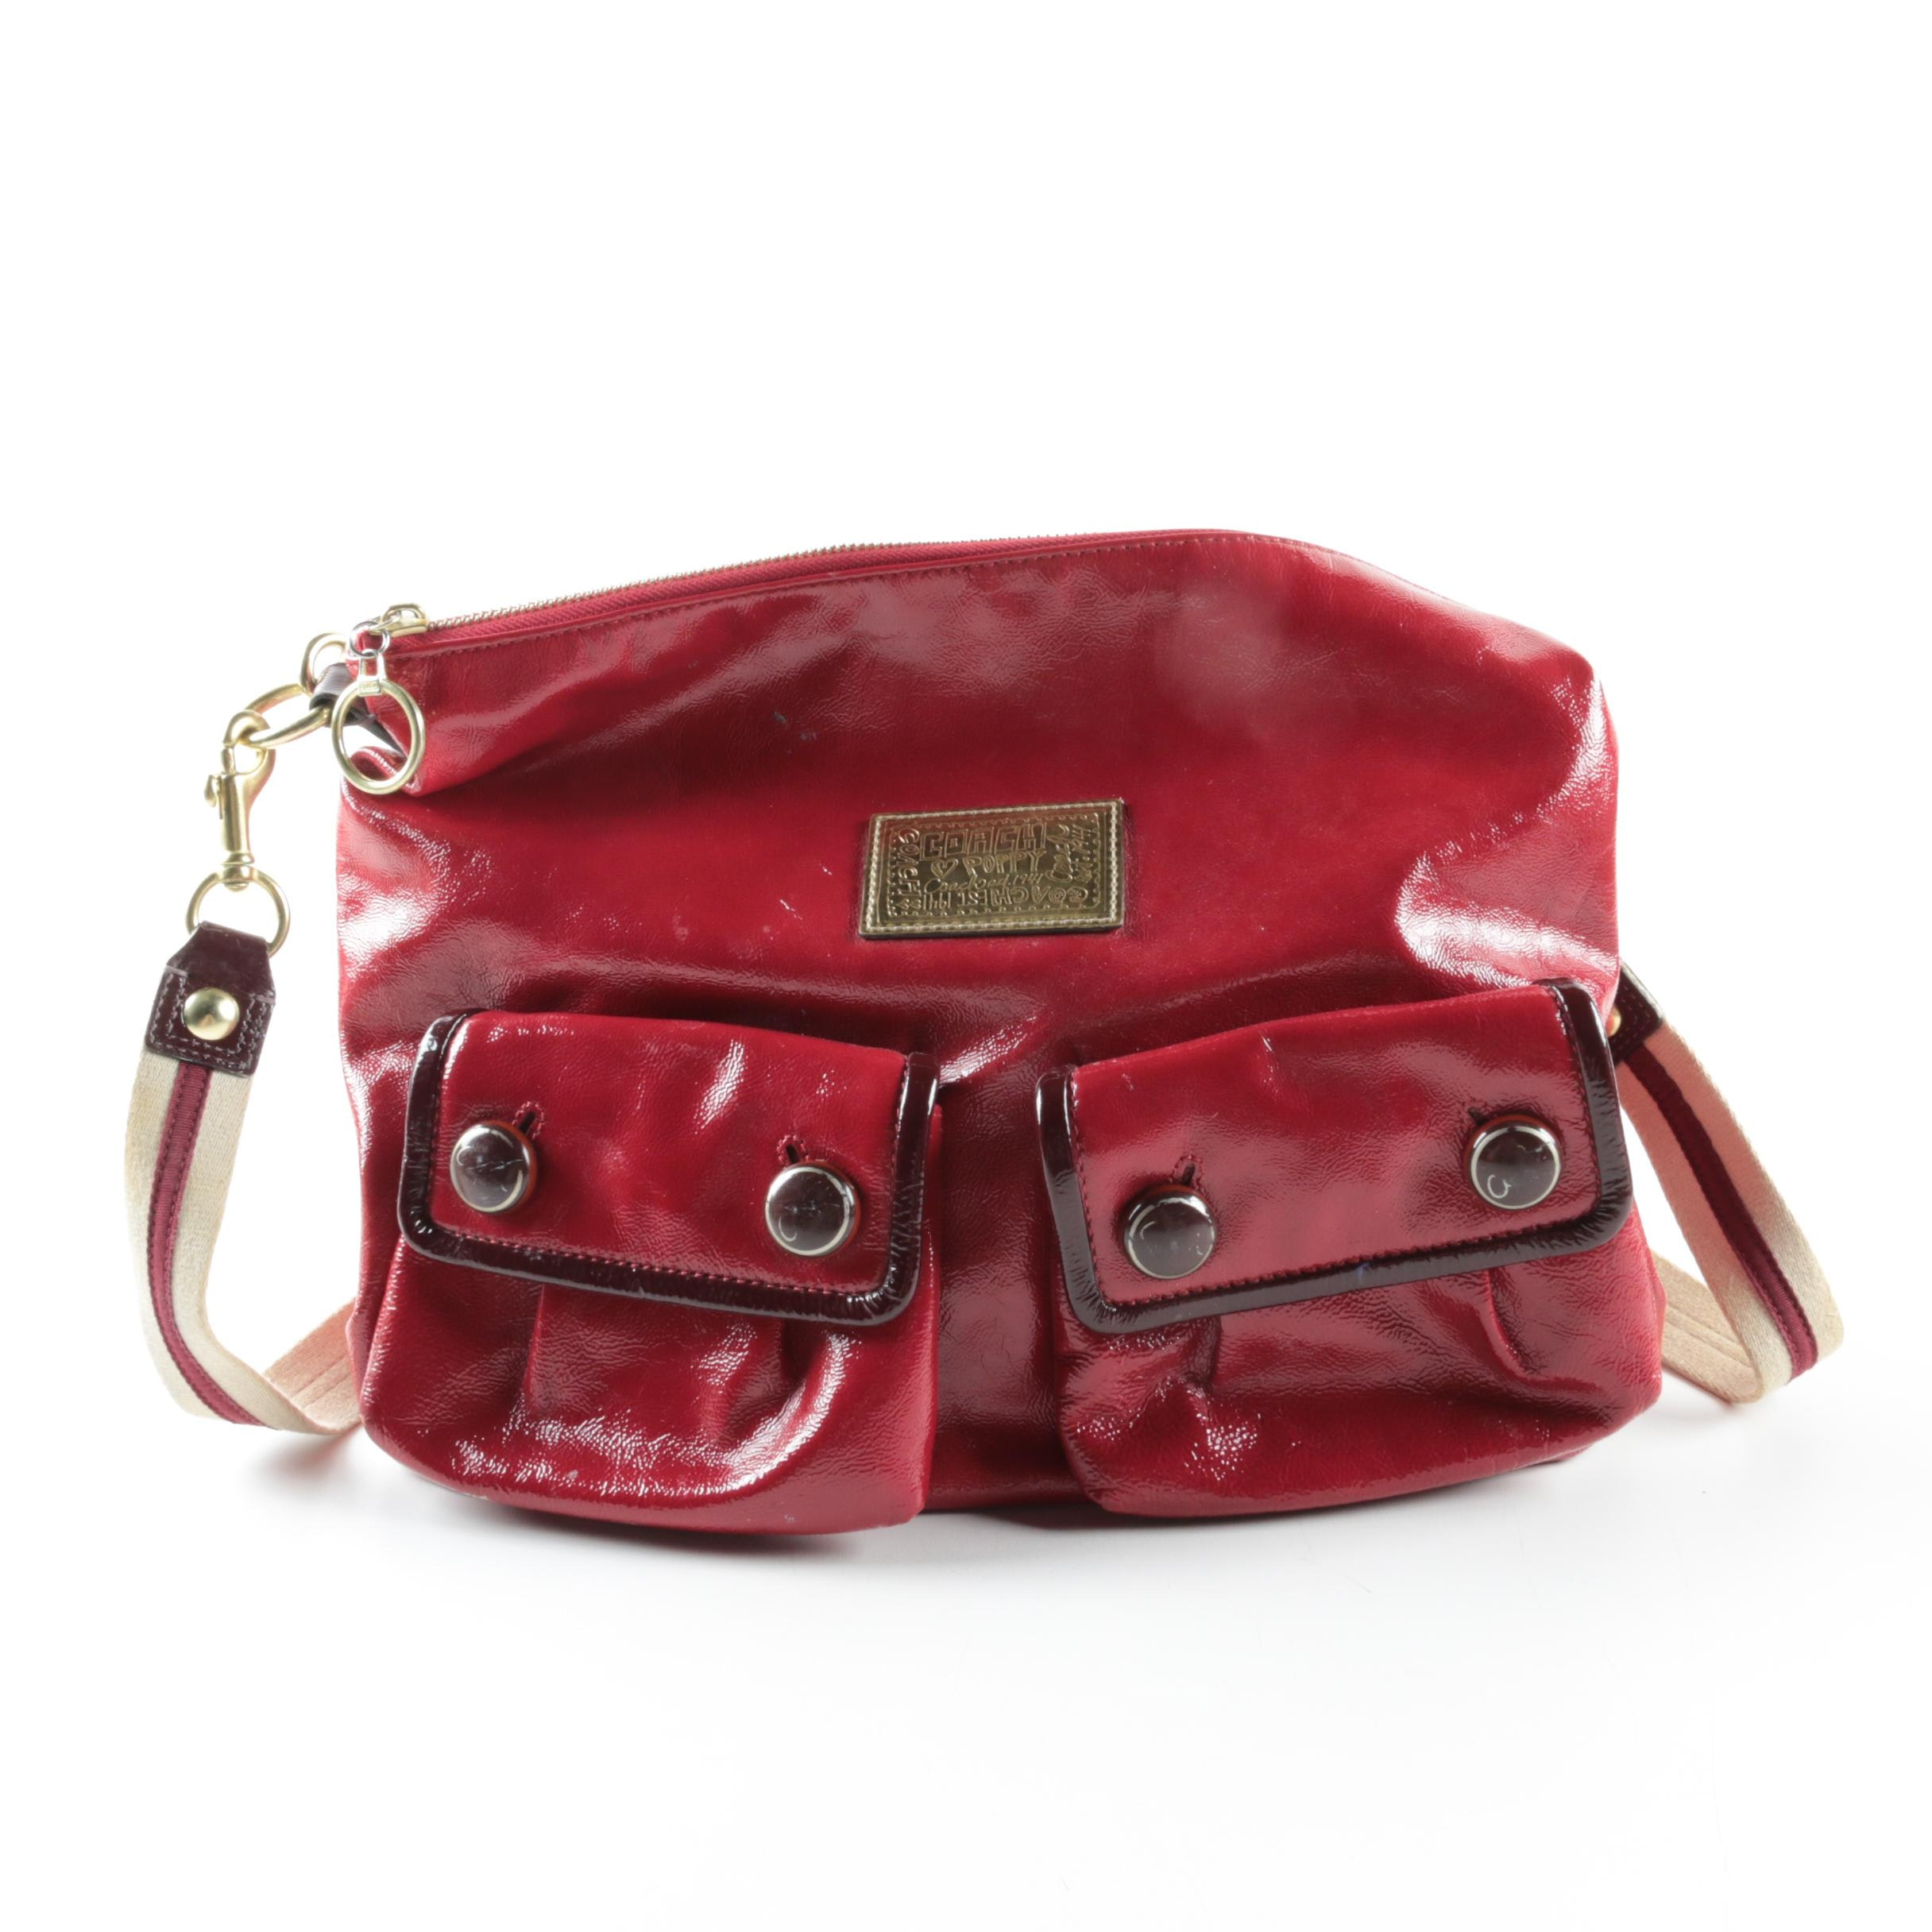 Coach Poppy Red Patent Leather Handbag